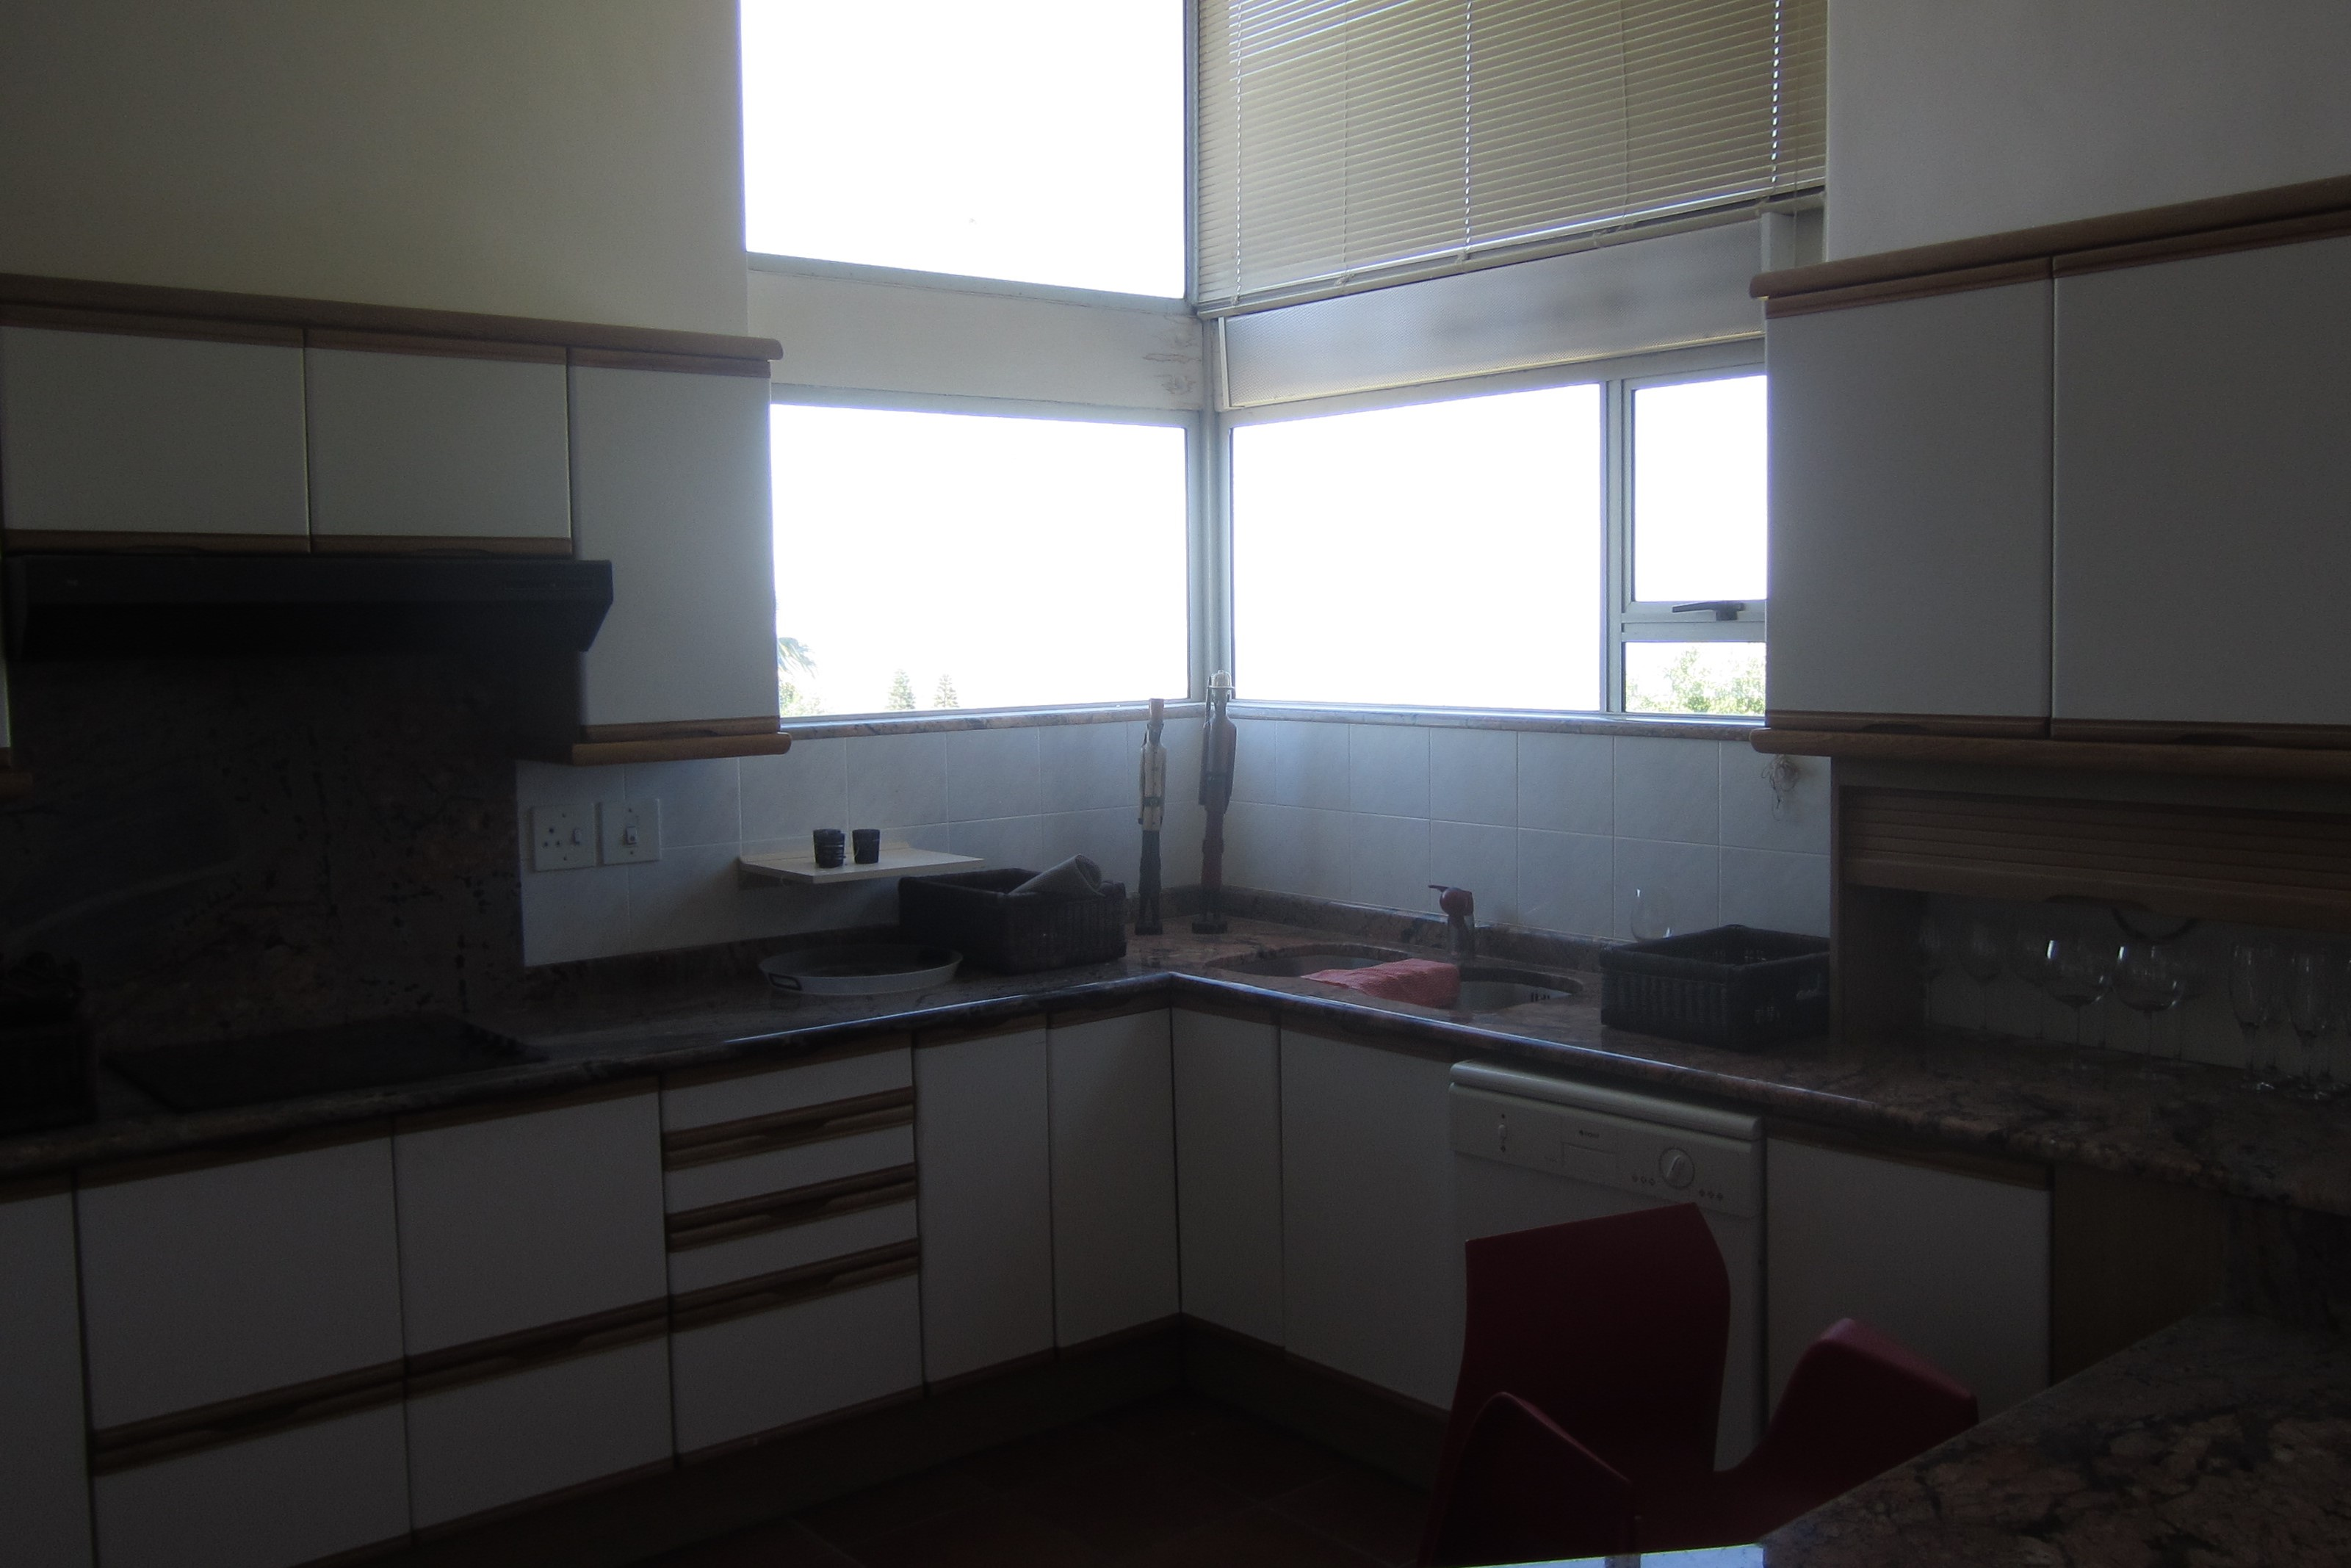 3 Bedroom House for sale in Monte Sereno ENT0015864 : photo#6